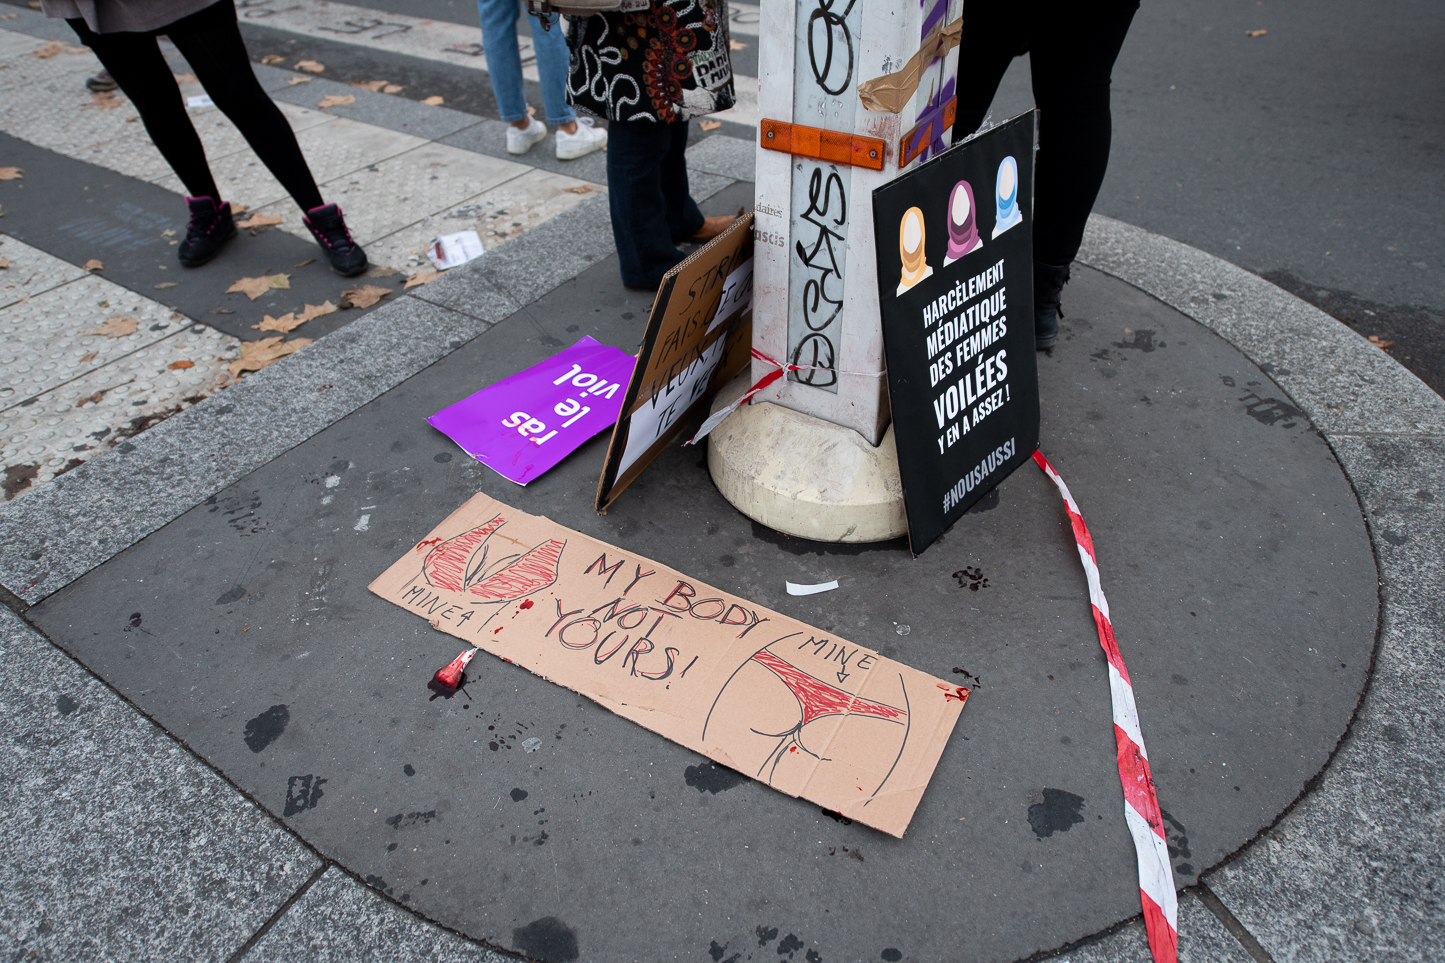 Tampon filled with fake blood alongside sings left on the ground at then end of the the march.